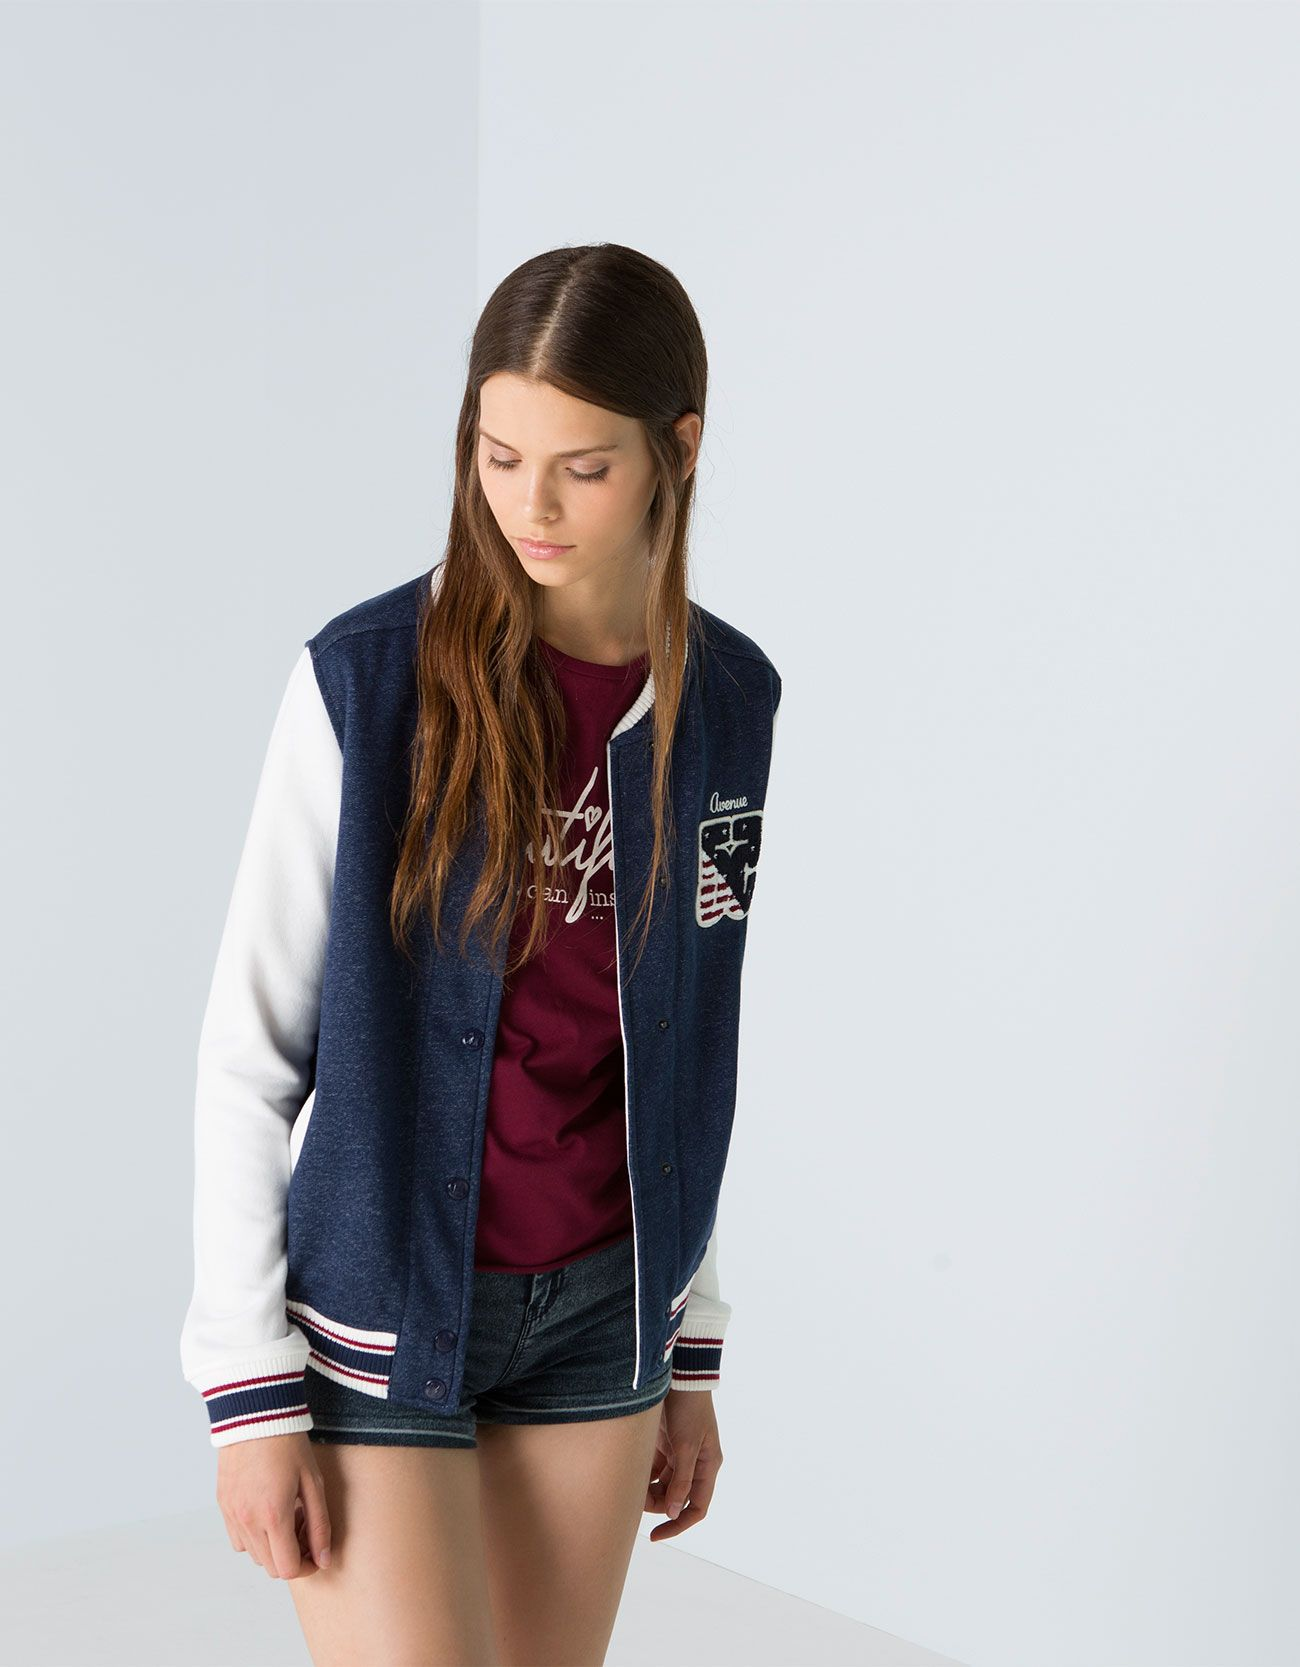 Bershka Serbia -BSK patch baseball jacket | bsk. | Pinterest ...